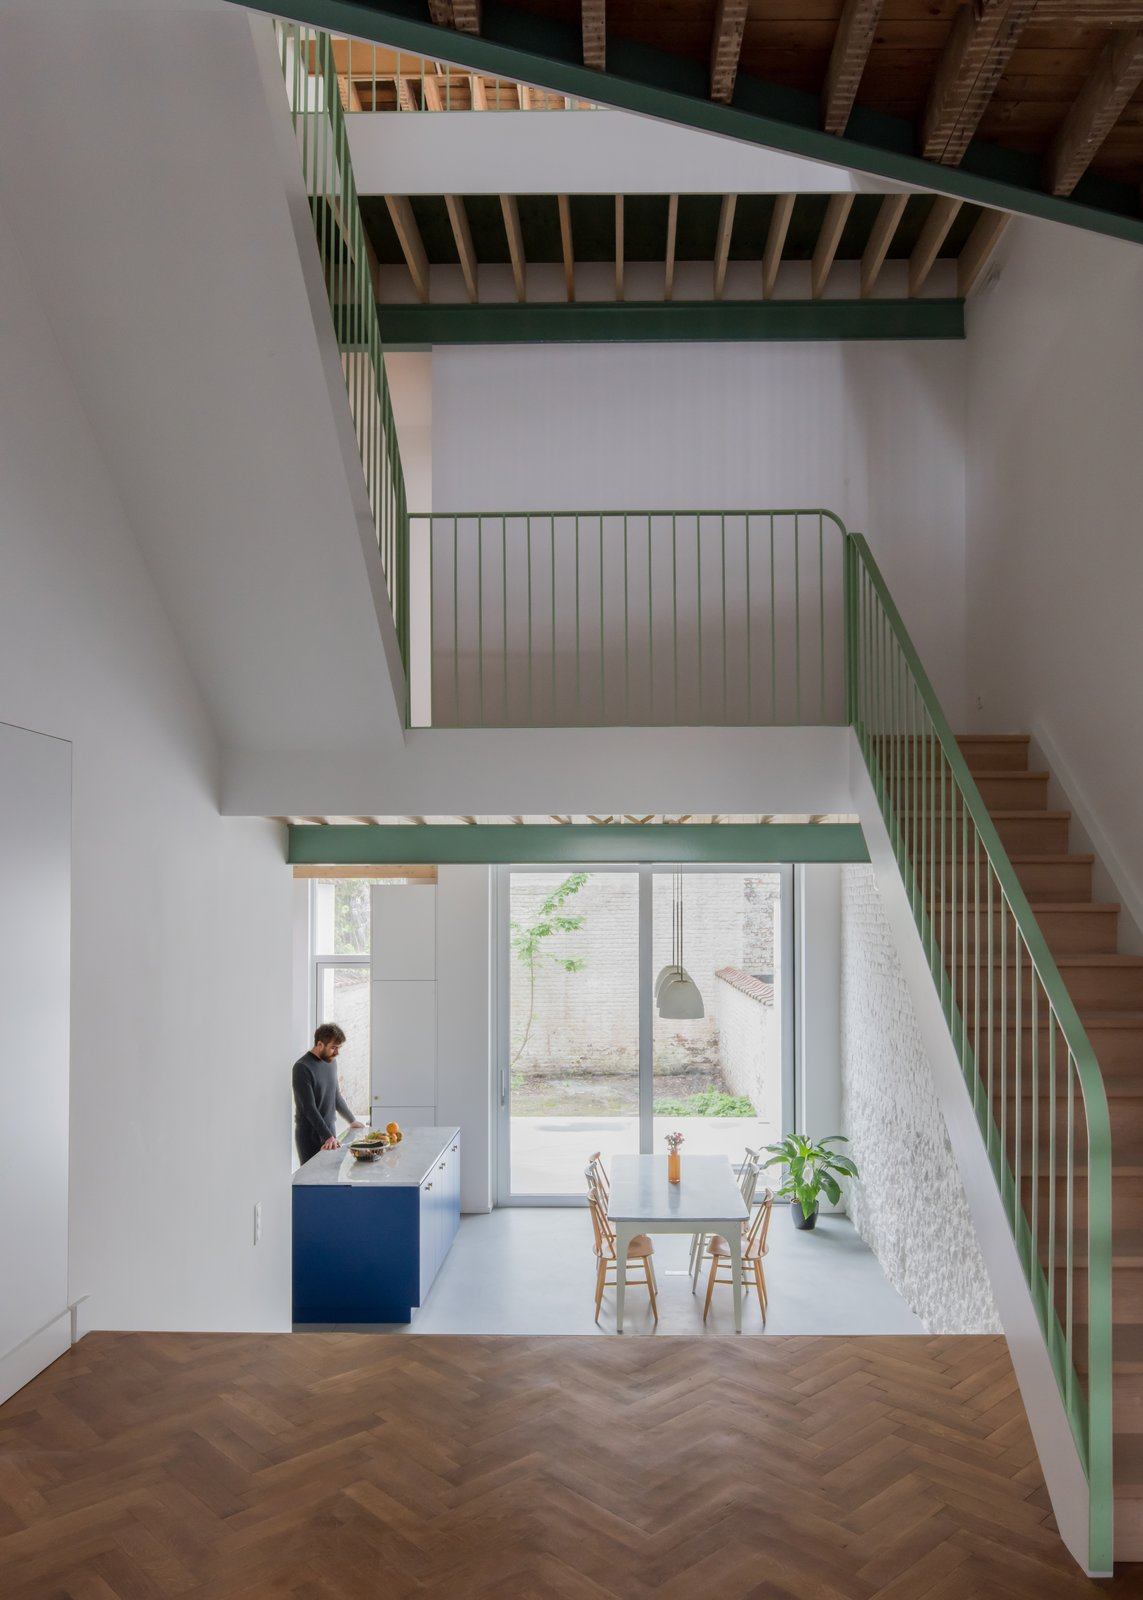 Staircase, Wood Tread, and Metal Railing Located in the center of the home, the simple, yet striking staircase connects three floors.    Photo 1 of 13 in A Mint-Green Staircase Adds Radiant Color to This Restored Townhouse